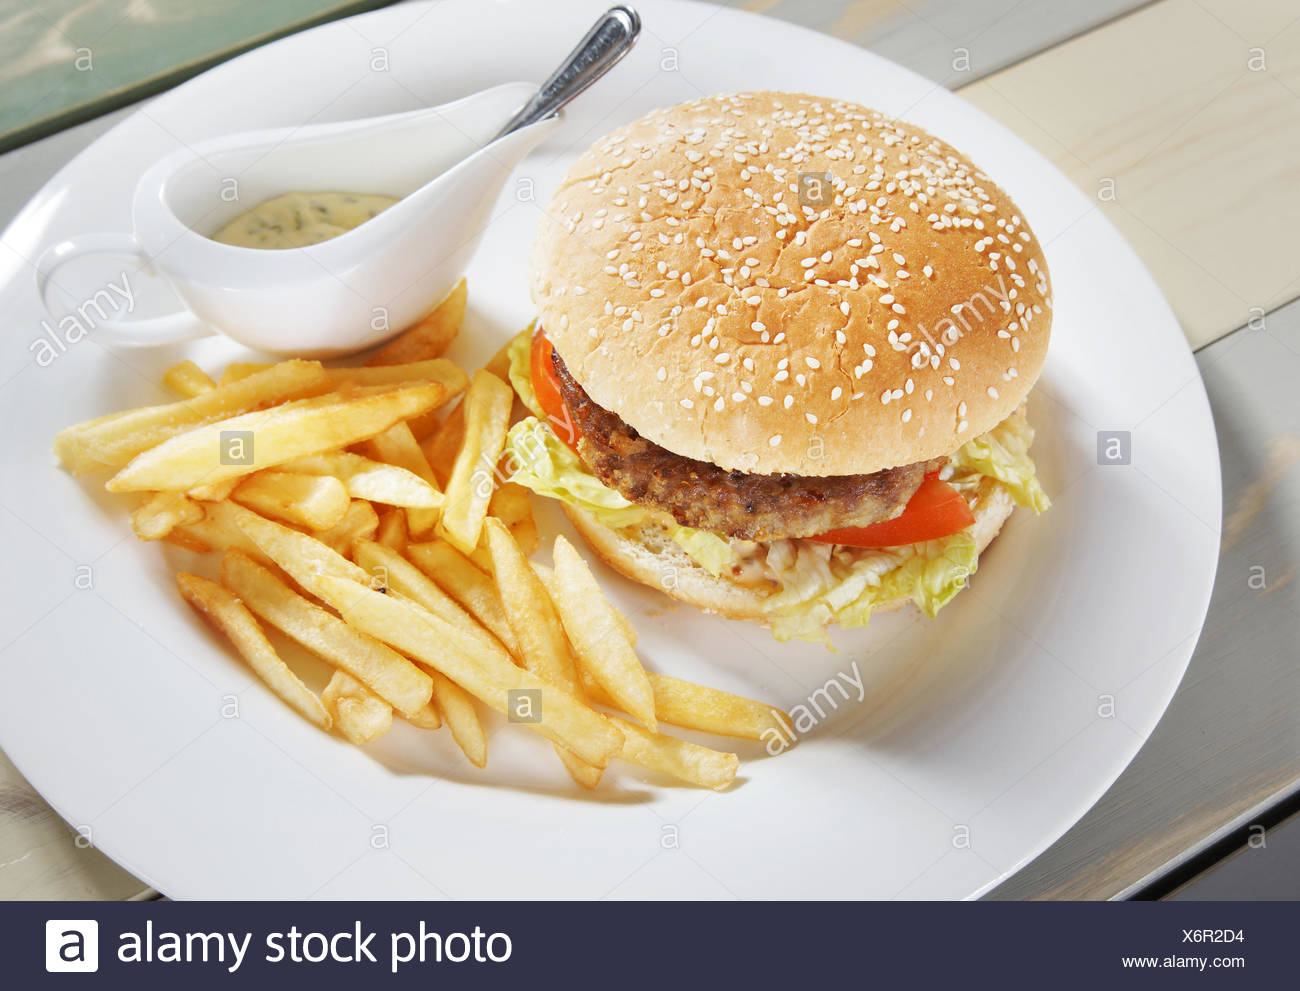 Hamburger with french fries and sauce - Stock Image